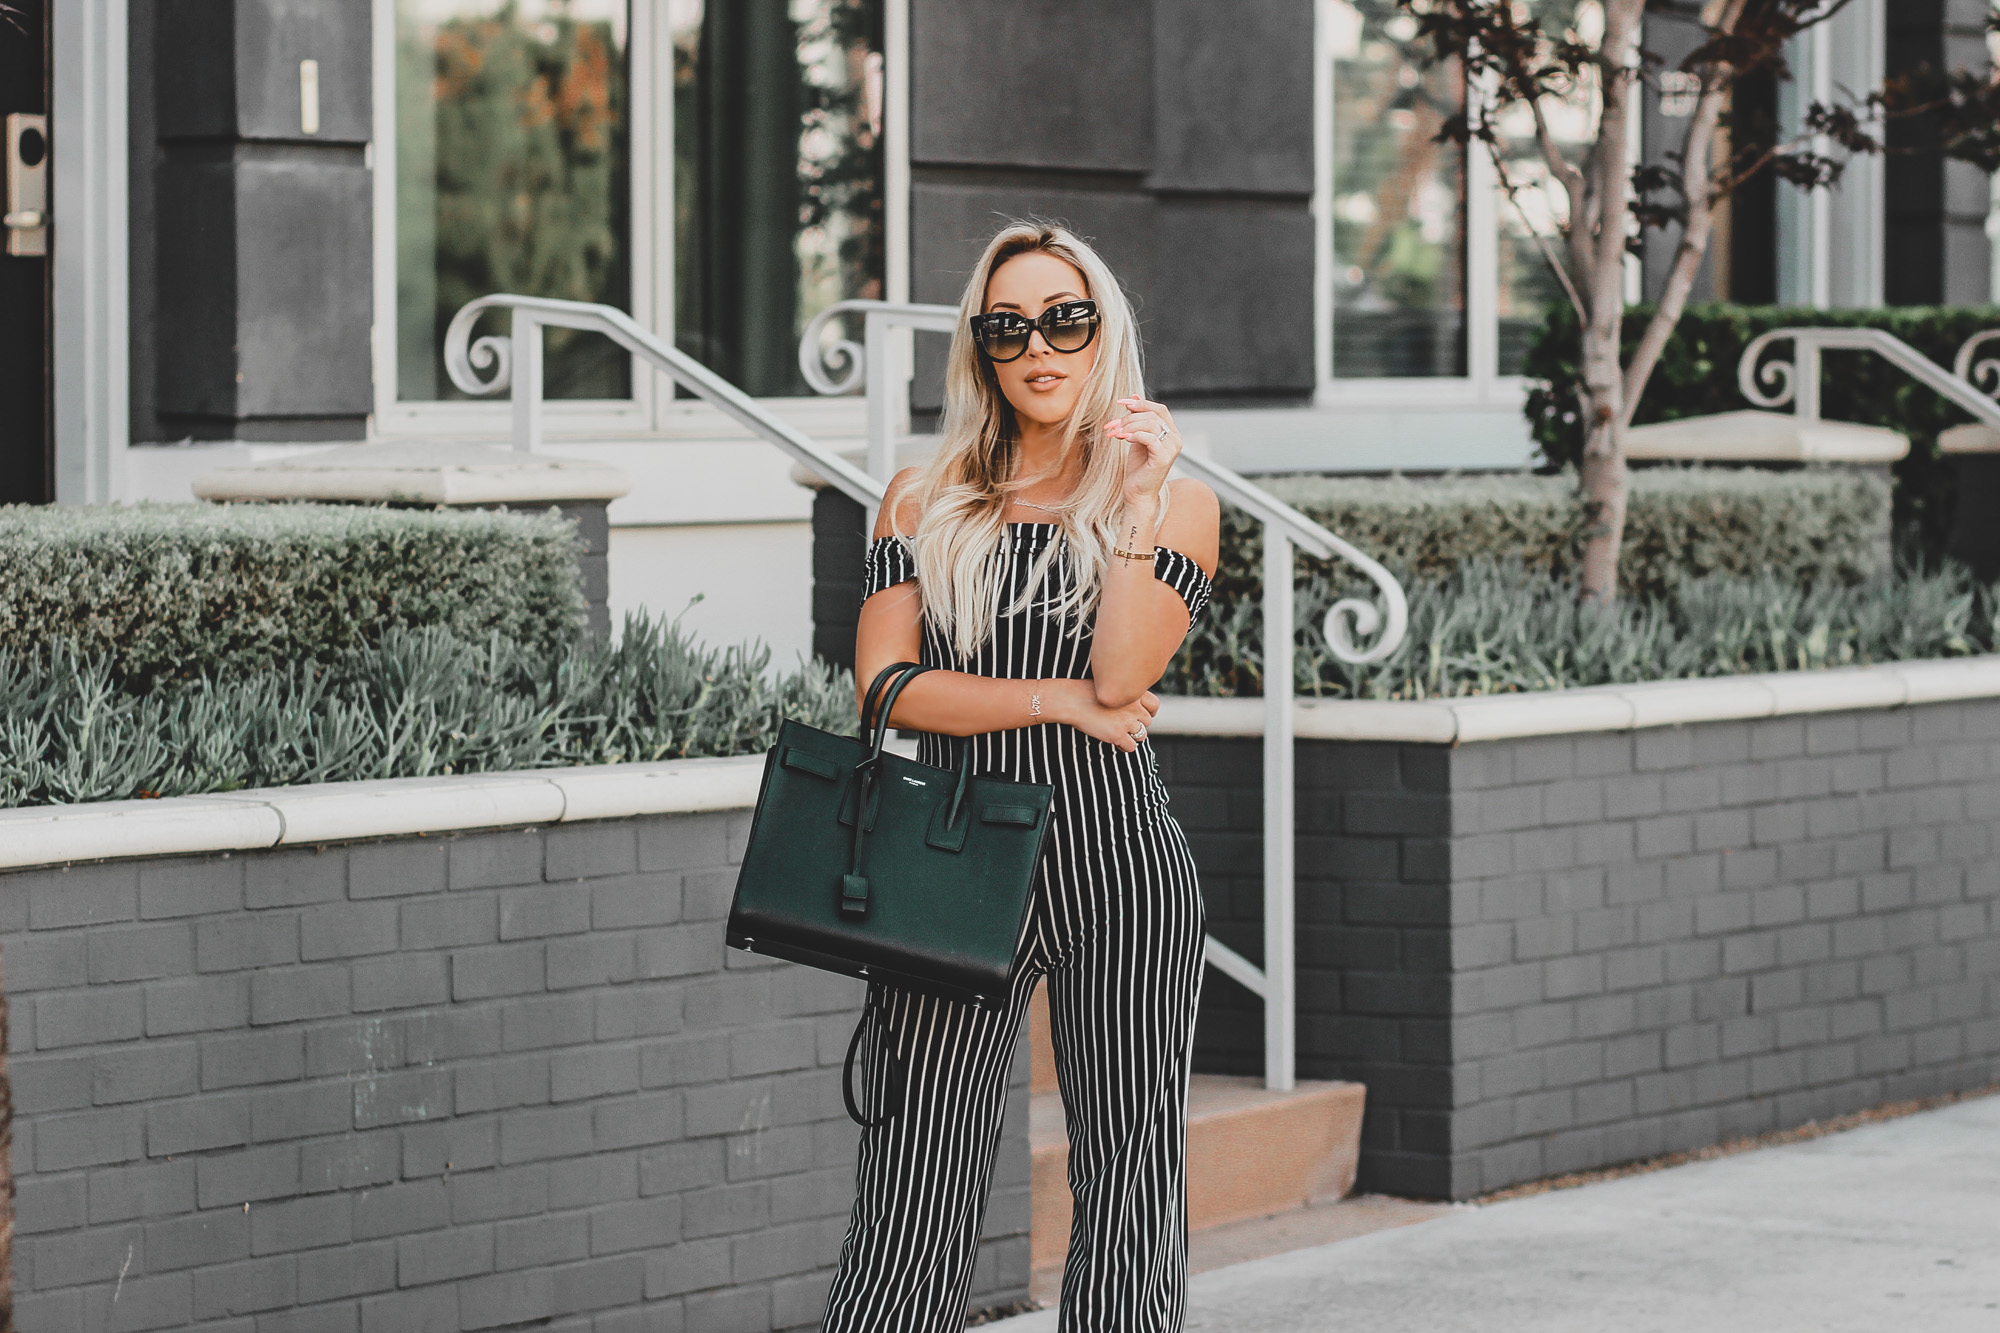 b23111359d8 How To Make Your Forever 21 Outfit Look Expensive - BLONDIE IN THE CITY